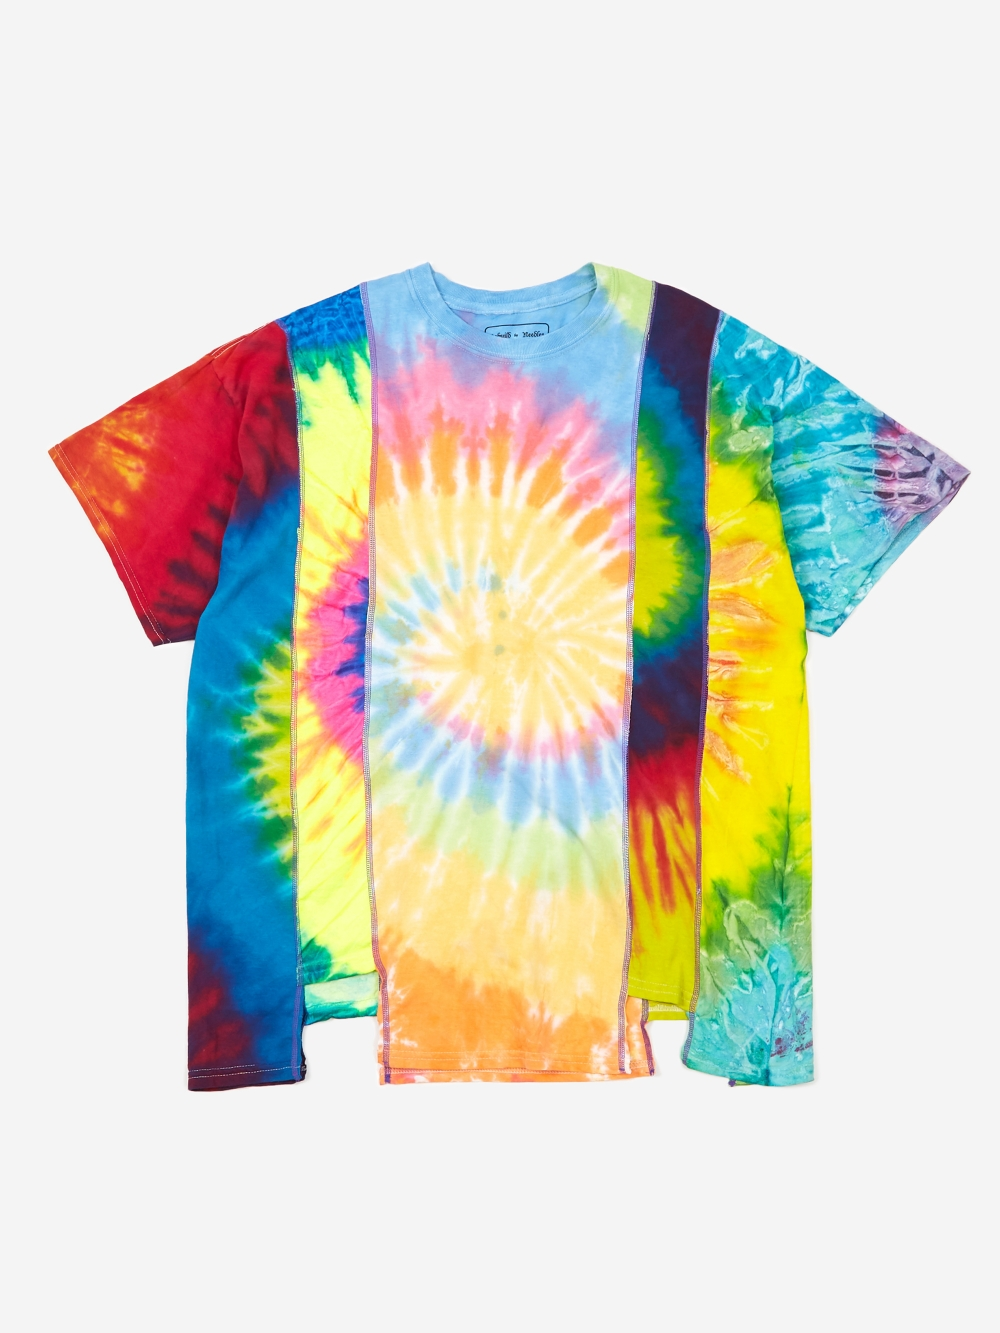 c8dd08373 Needles Rebuild 5 Cuts Tie-Dye T-Shirt Size X-Large 1 - Assorted